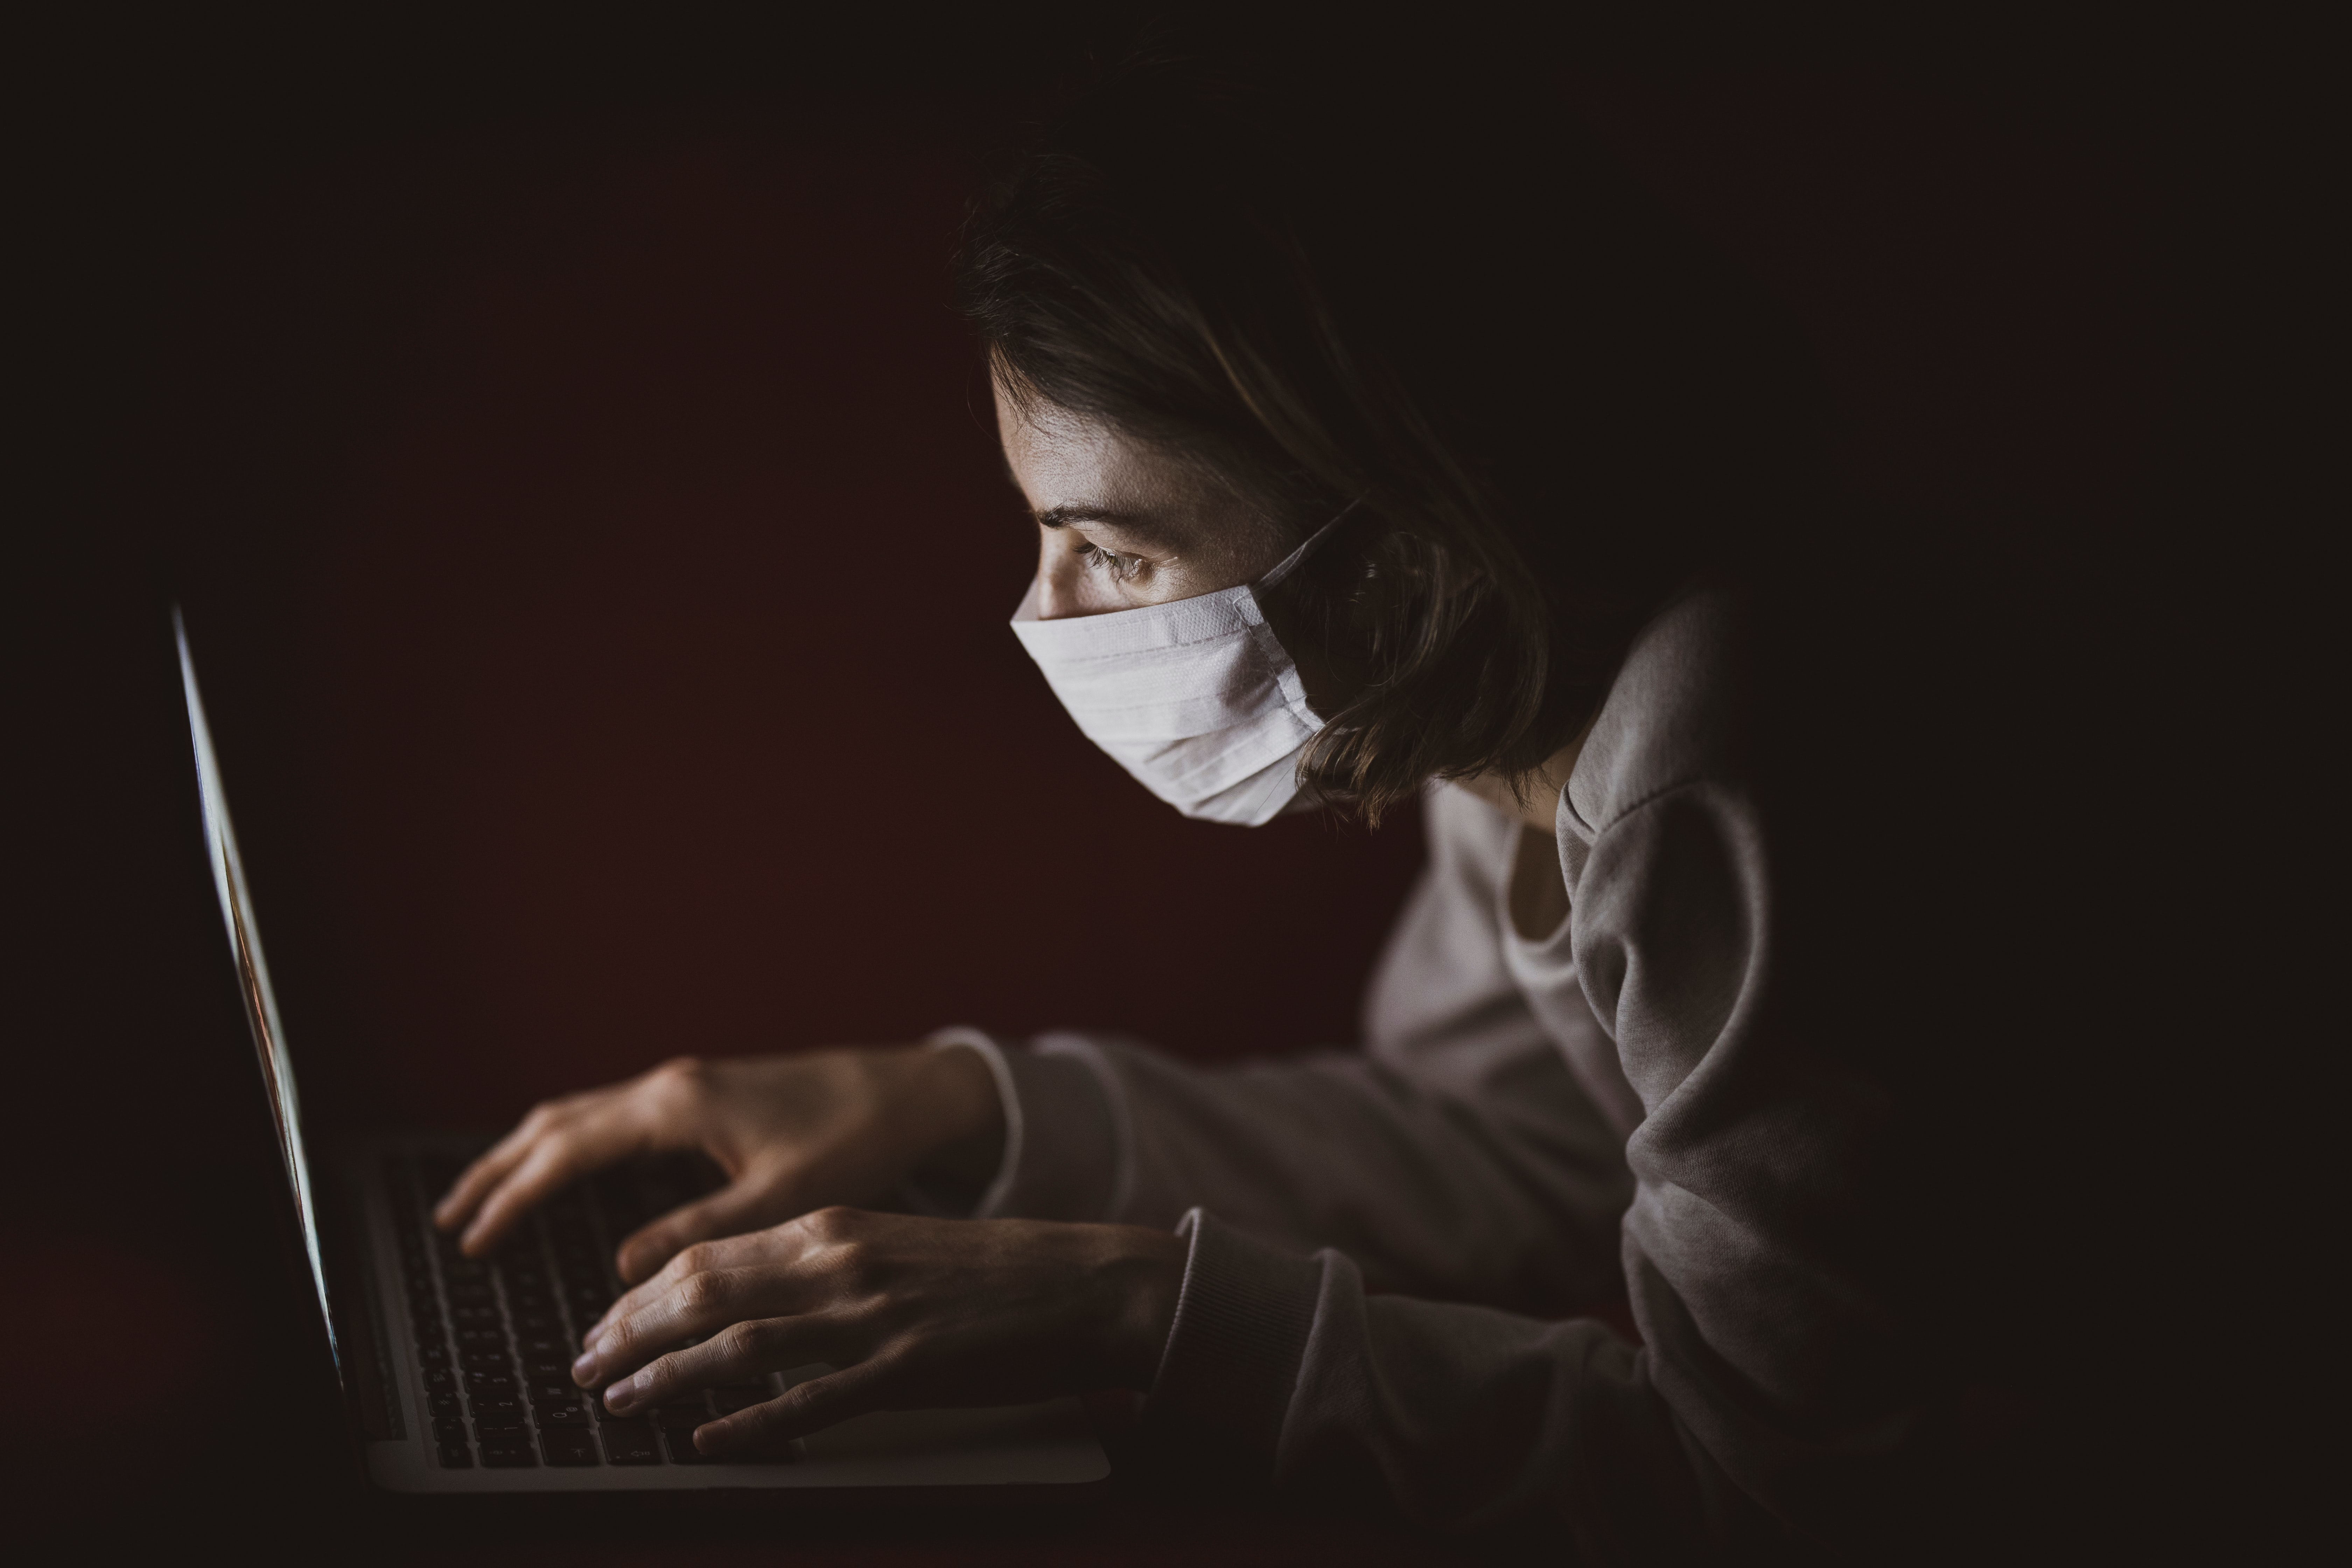 The coronavirus lockdown could lead to more remote workers than ever, each one deserving protection